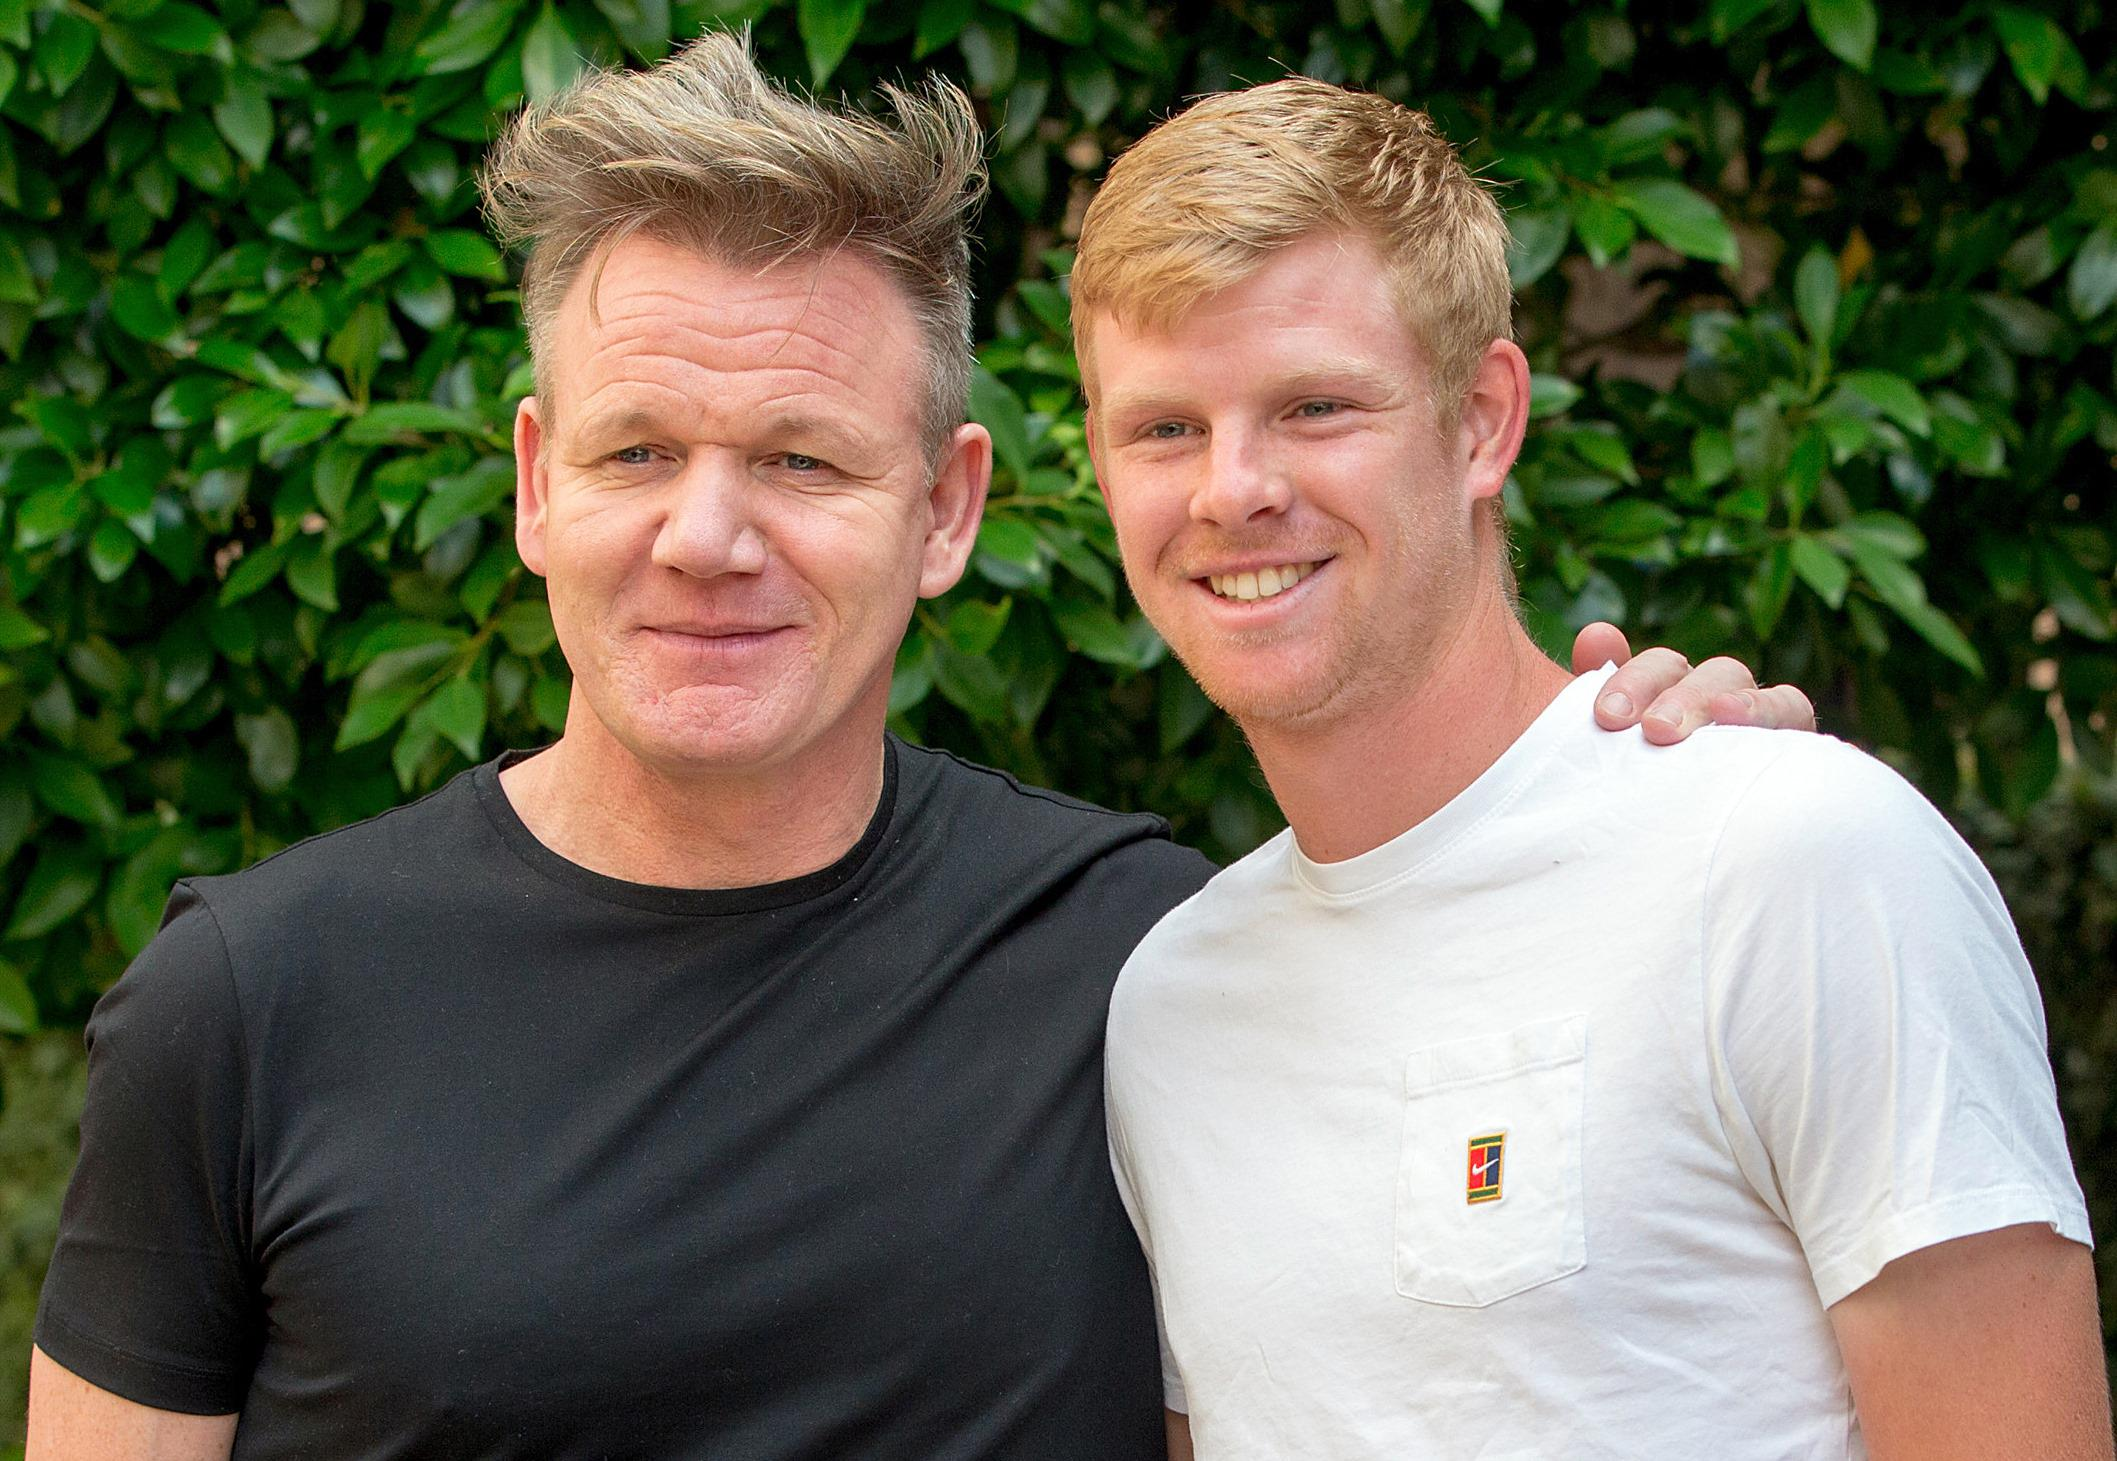 Gordon Ramsay has promised Kyle Edmund a slap-up meal if he makes it past Marin Cilic